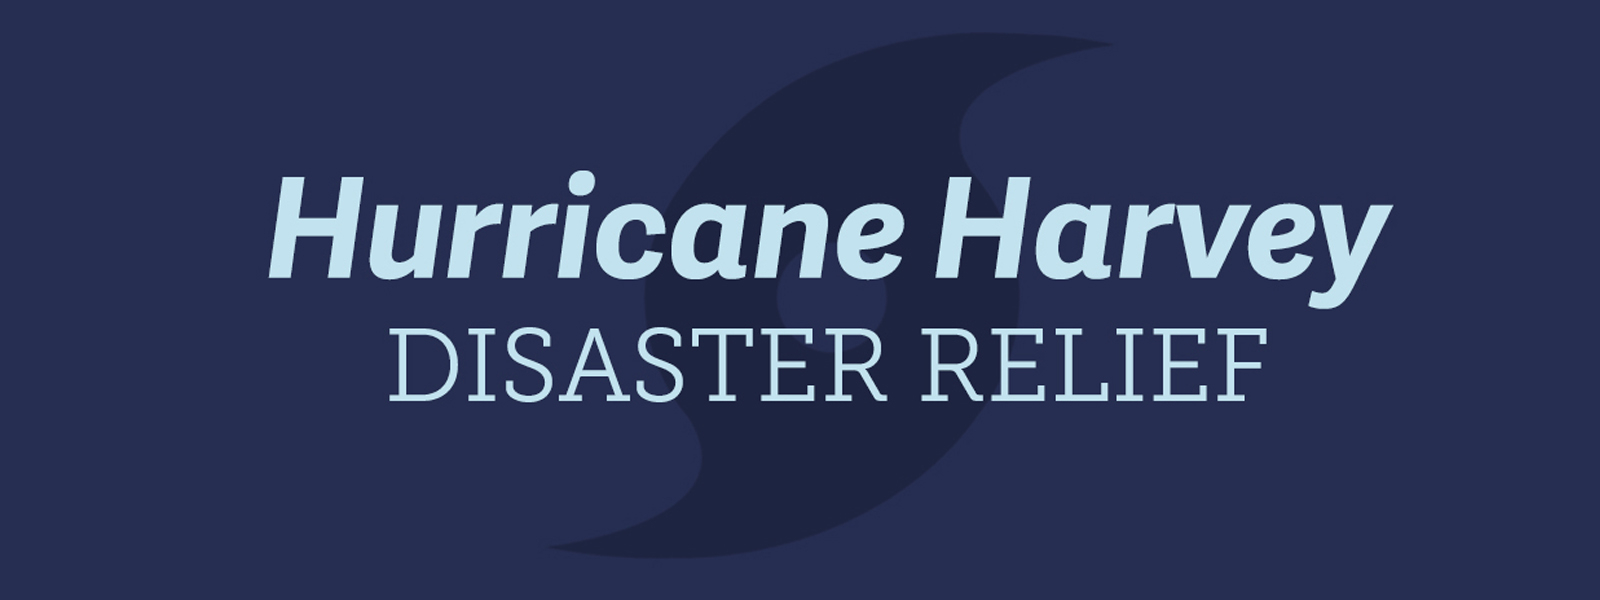 Hurricane Harvey Disaster Relief Resources